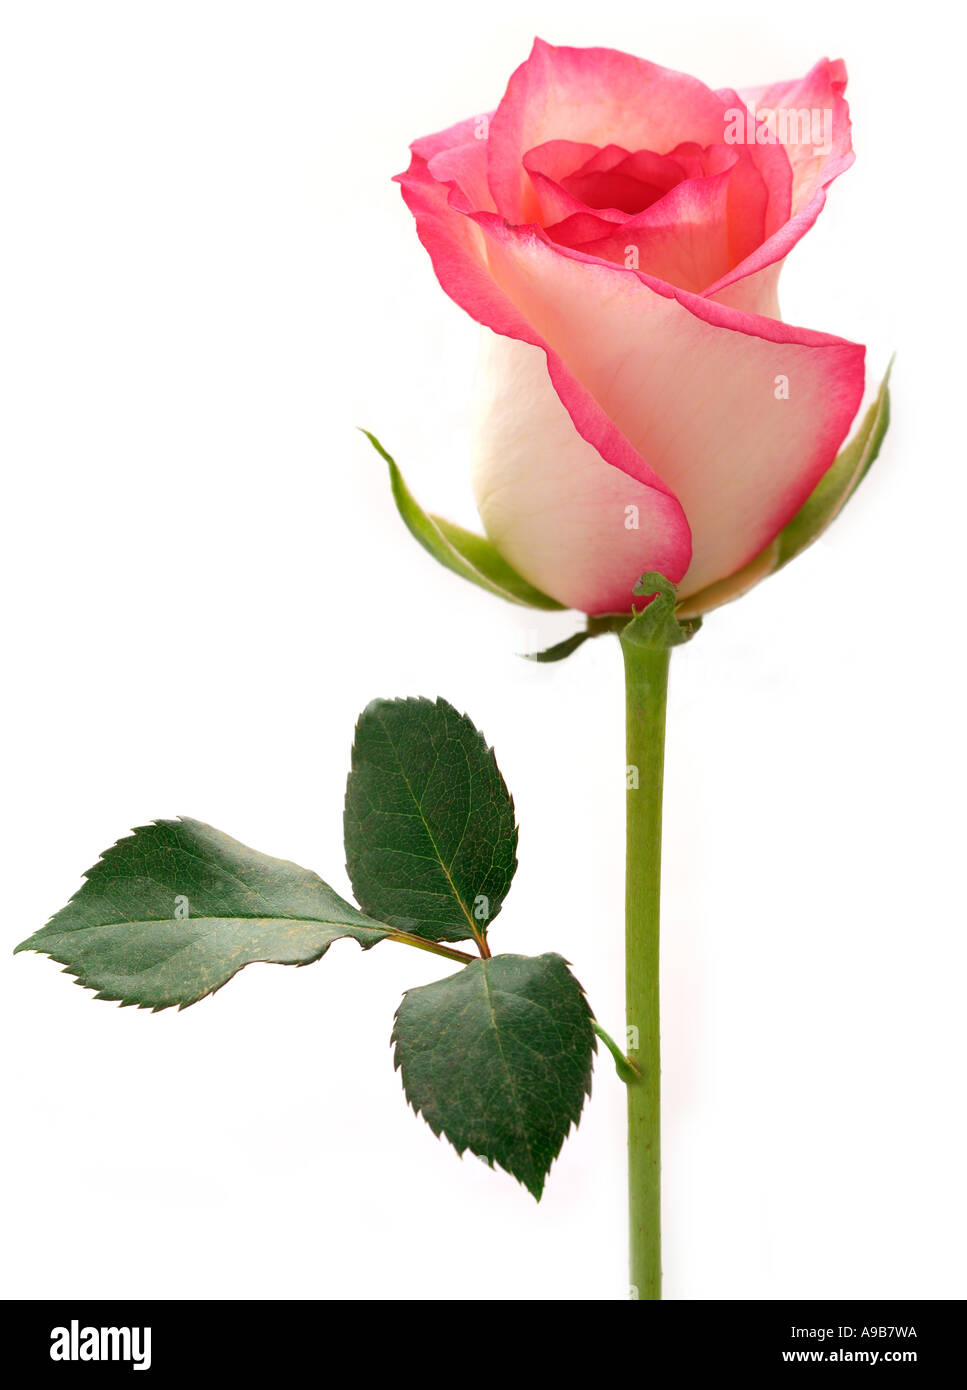 Pink Red White Single Rose Stem Flower Nature Natural Cutout Leaf Stock Photo Alamy